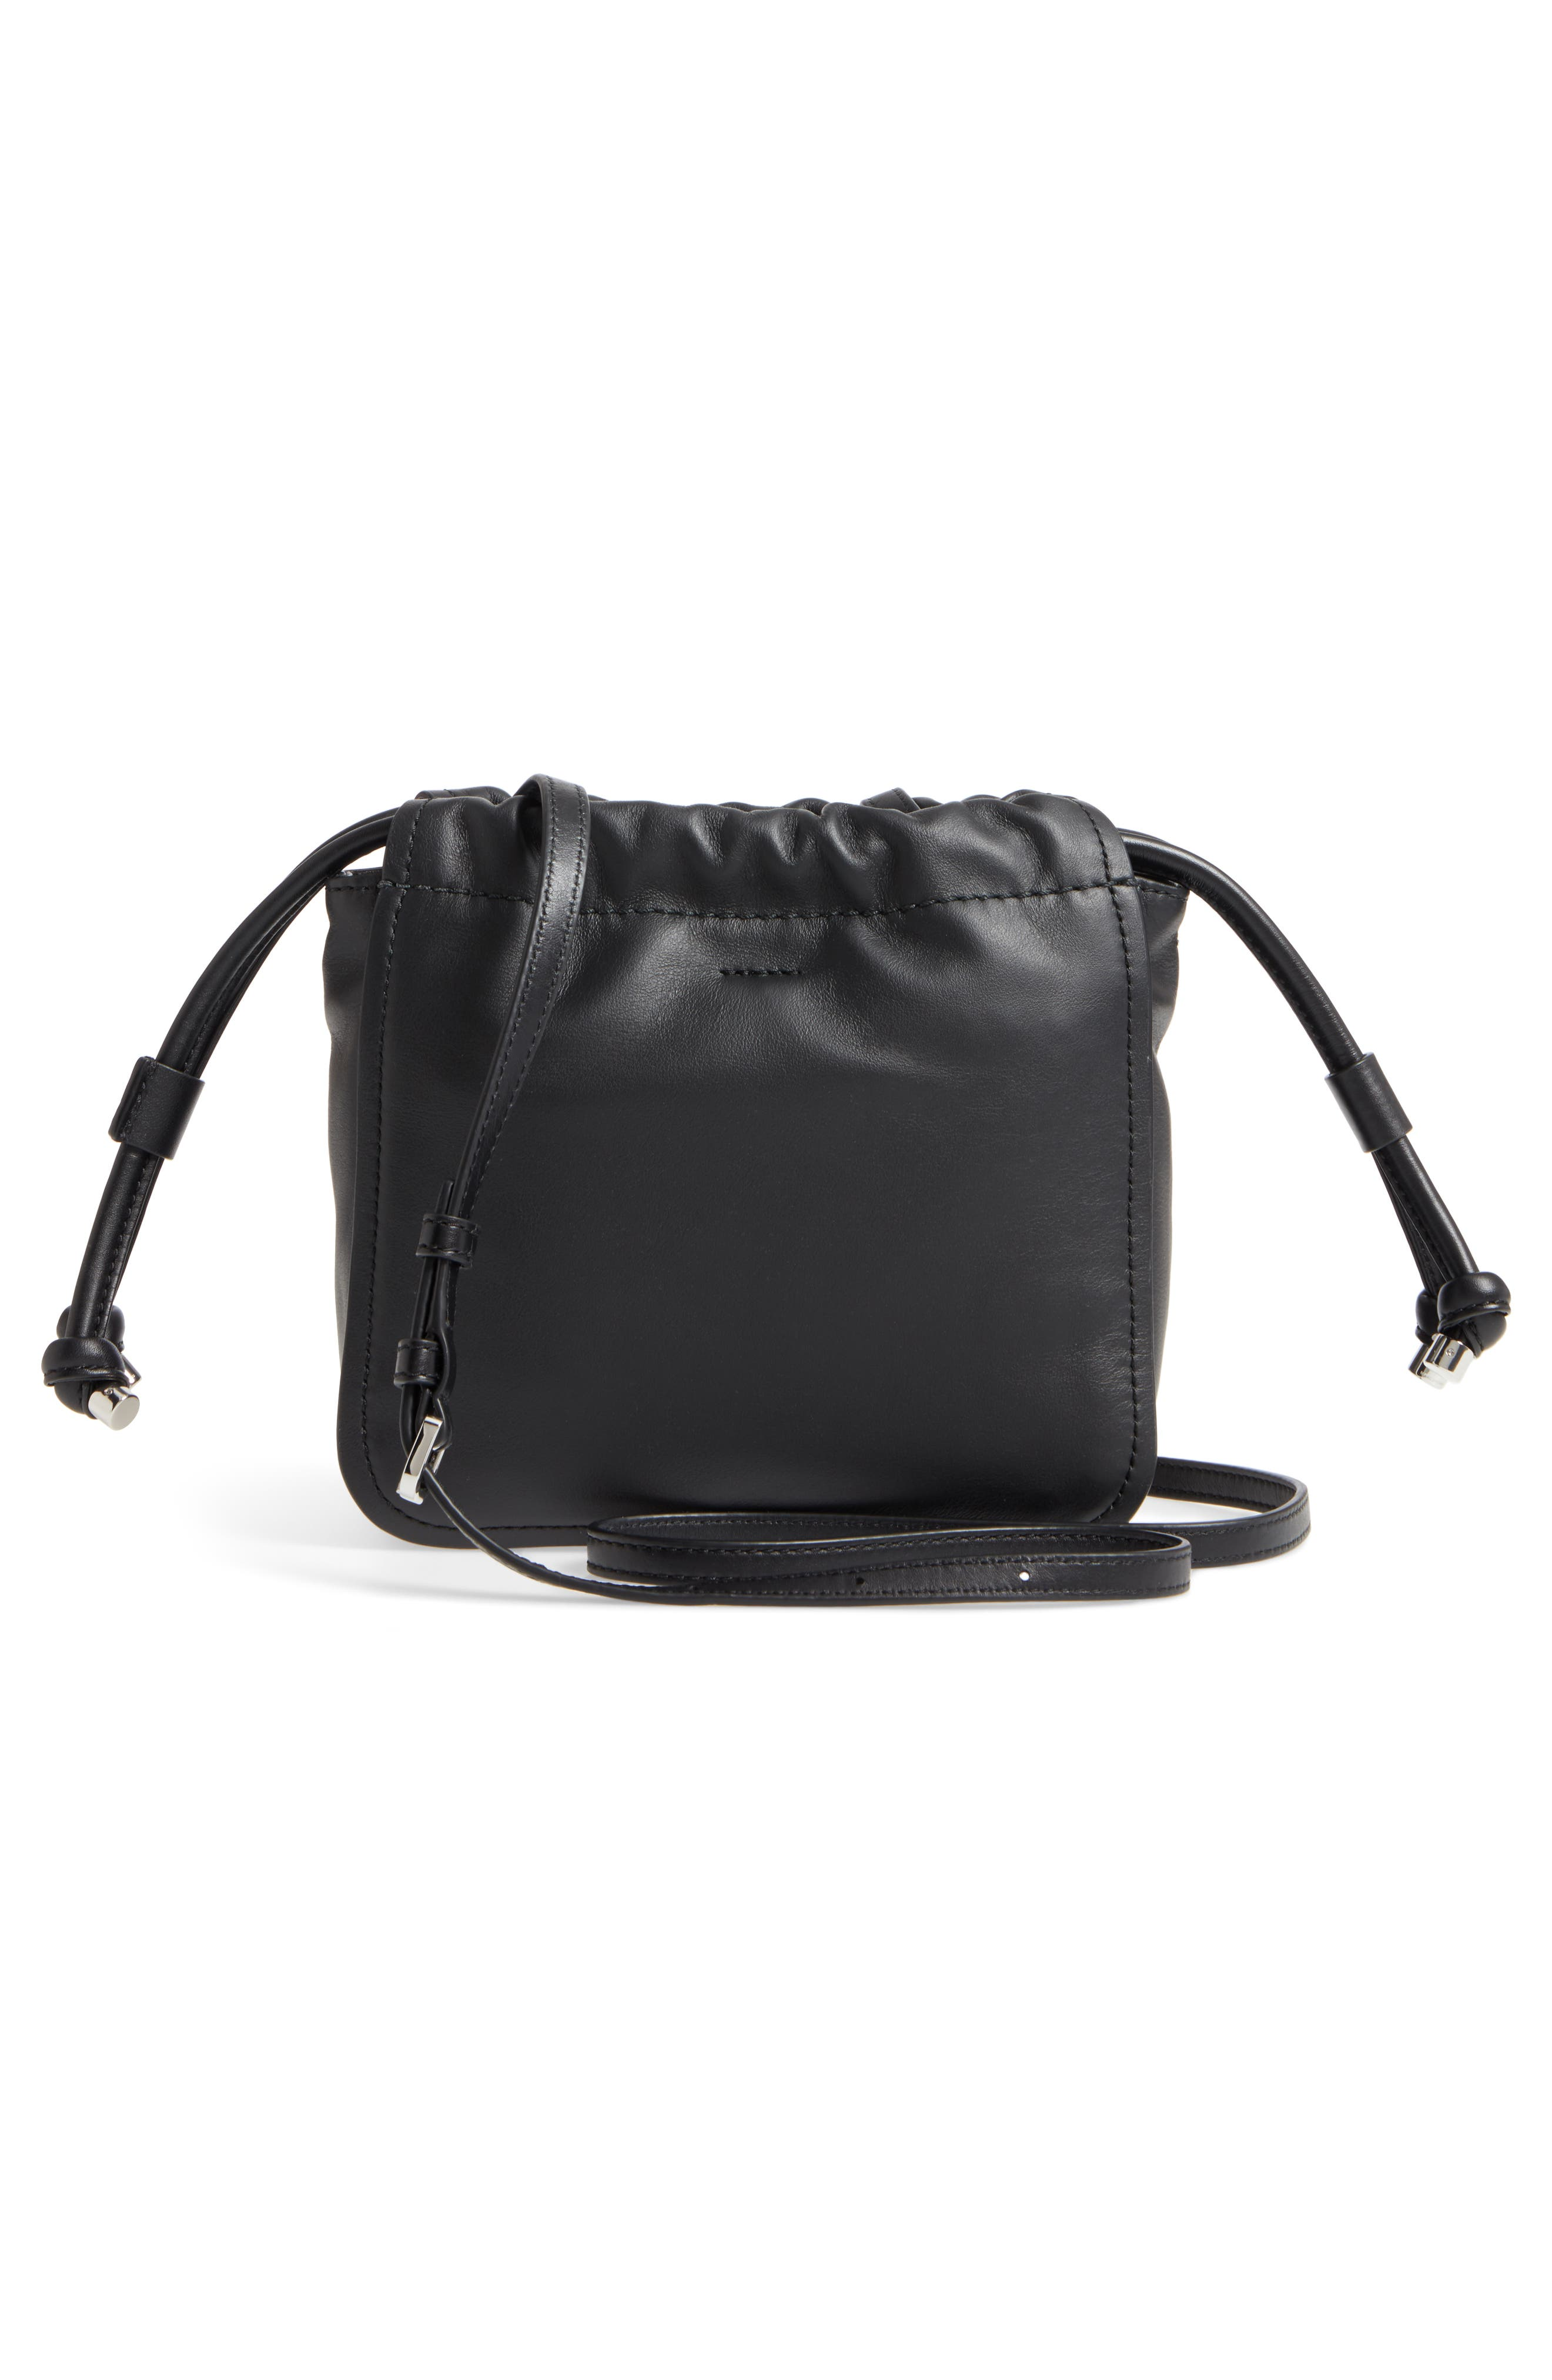 Tied Up Leather Crossbody Bag,                             Alternate thumbnail 3, color,                             001